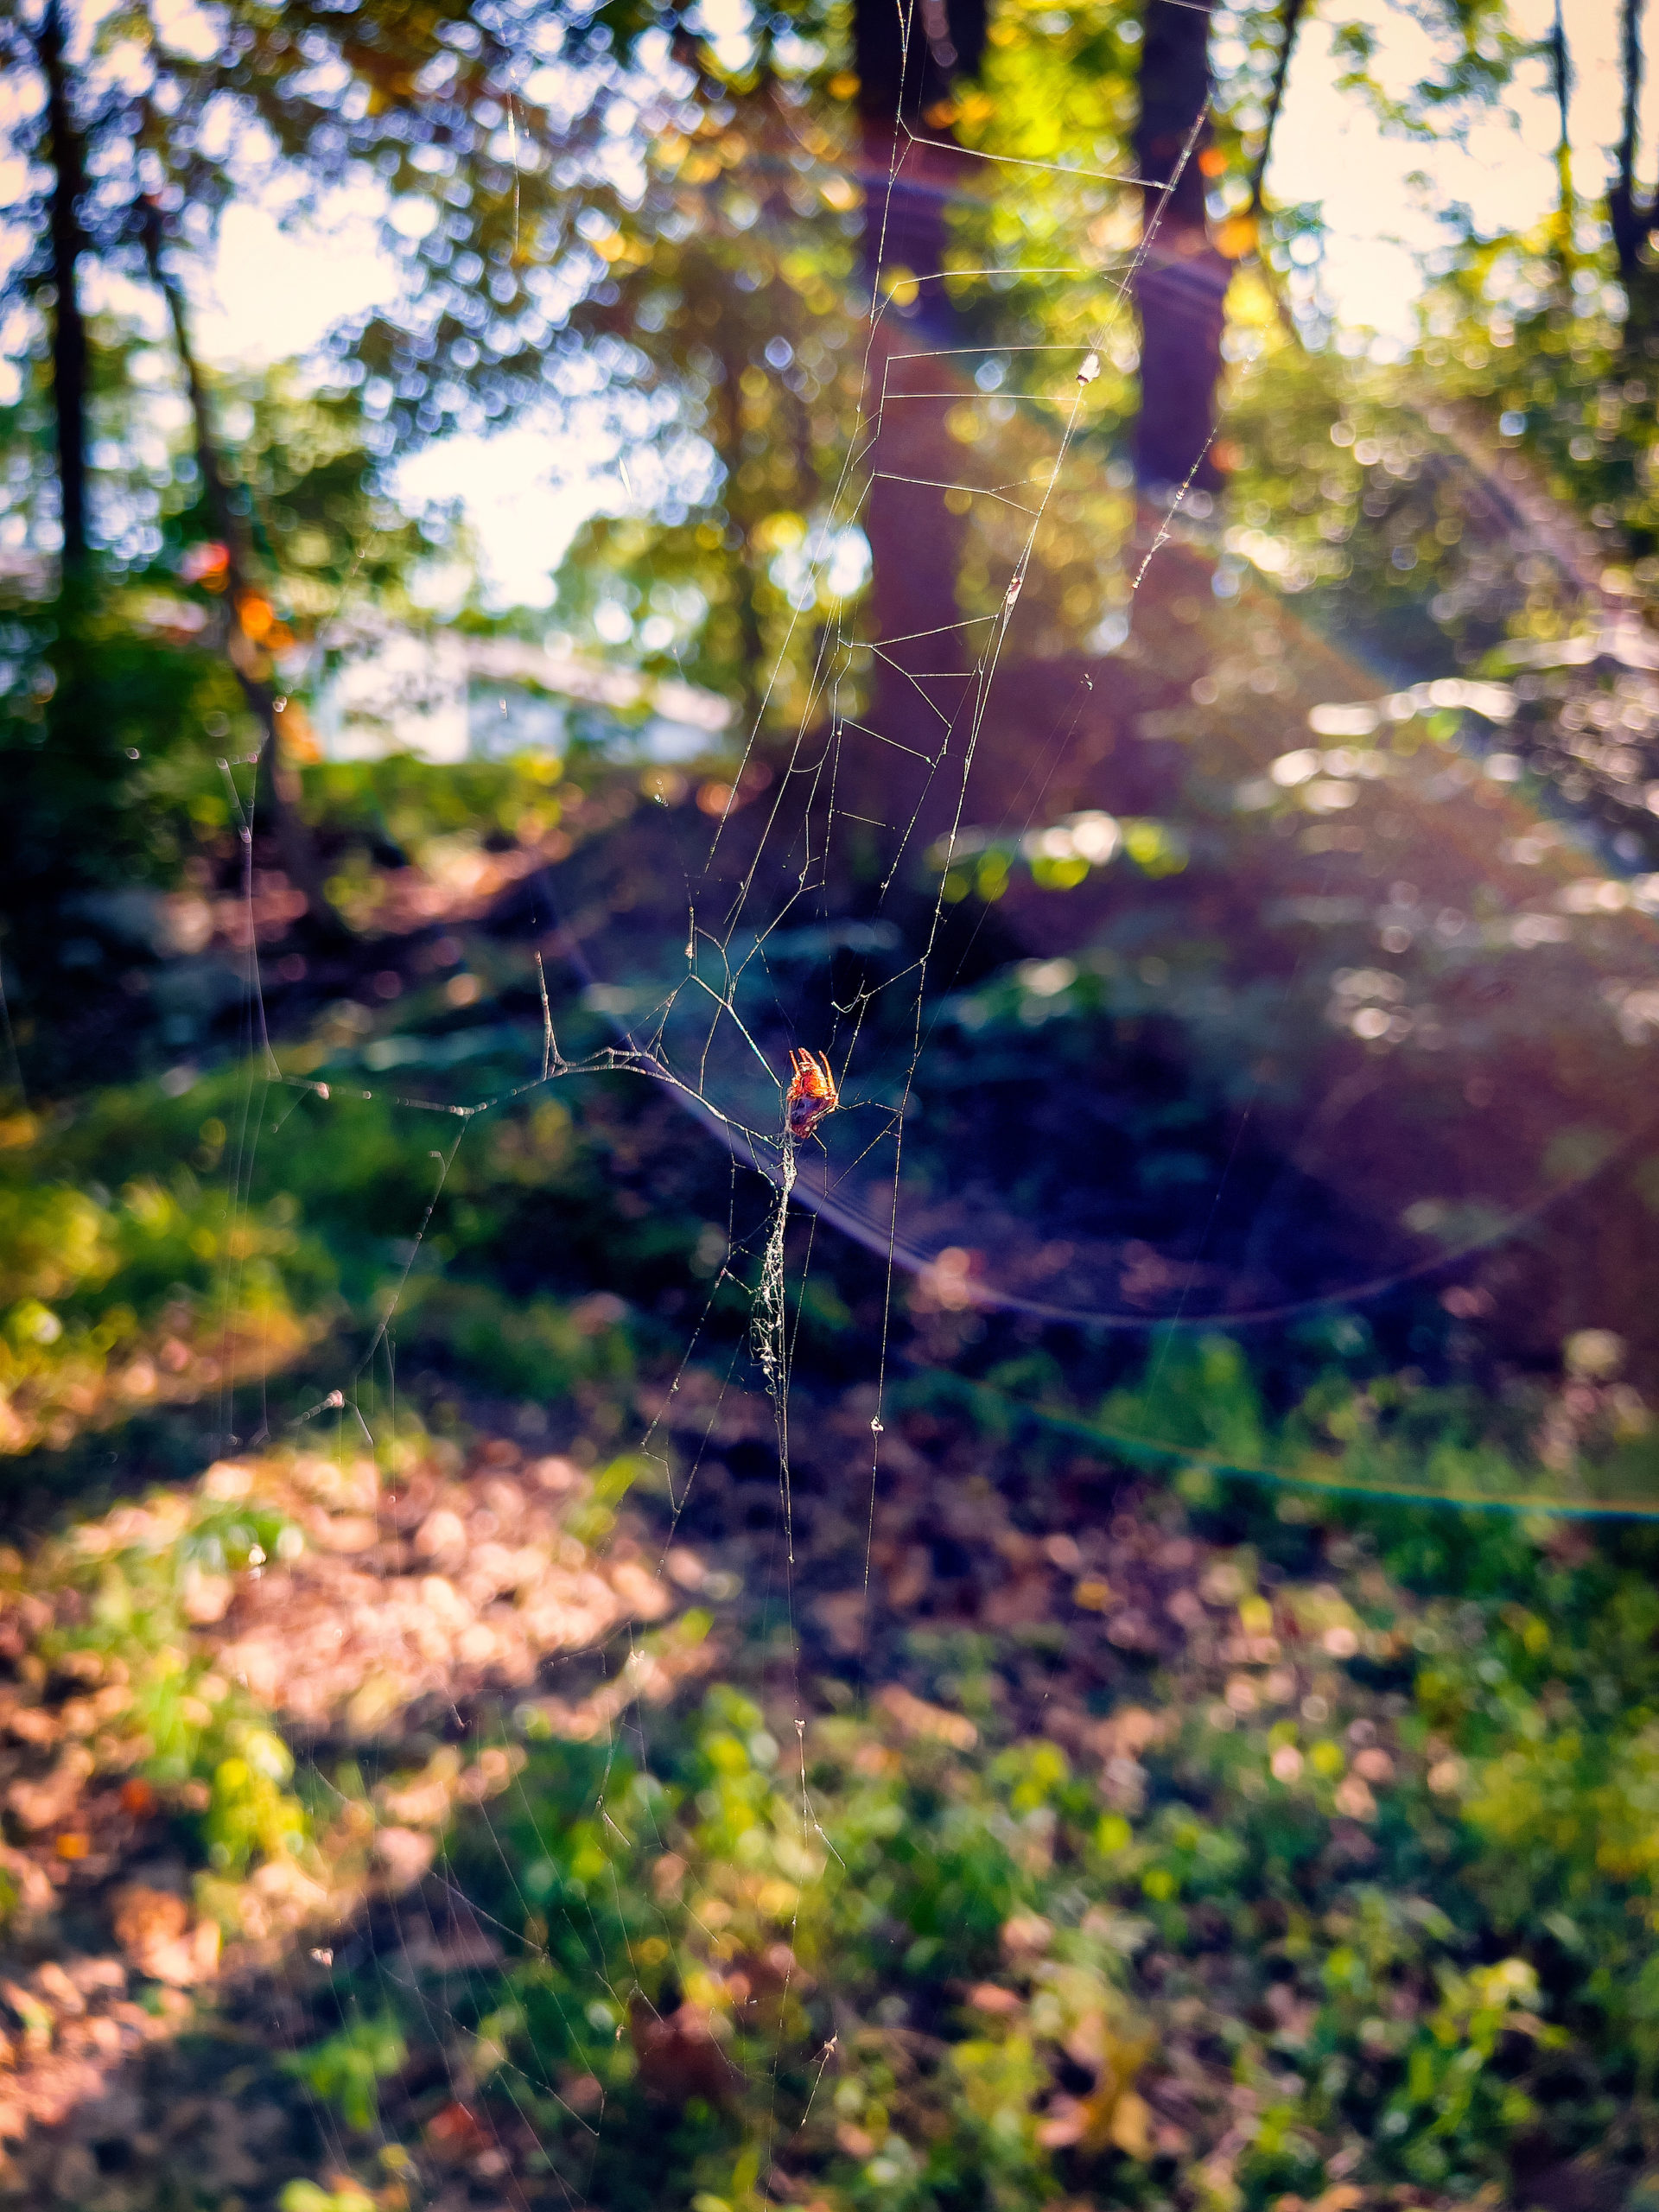 A spider on a web in the woods